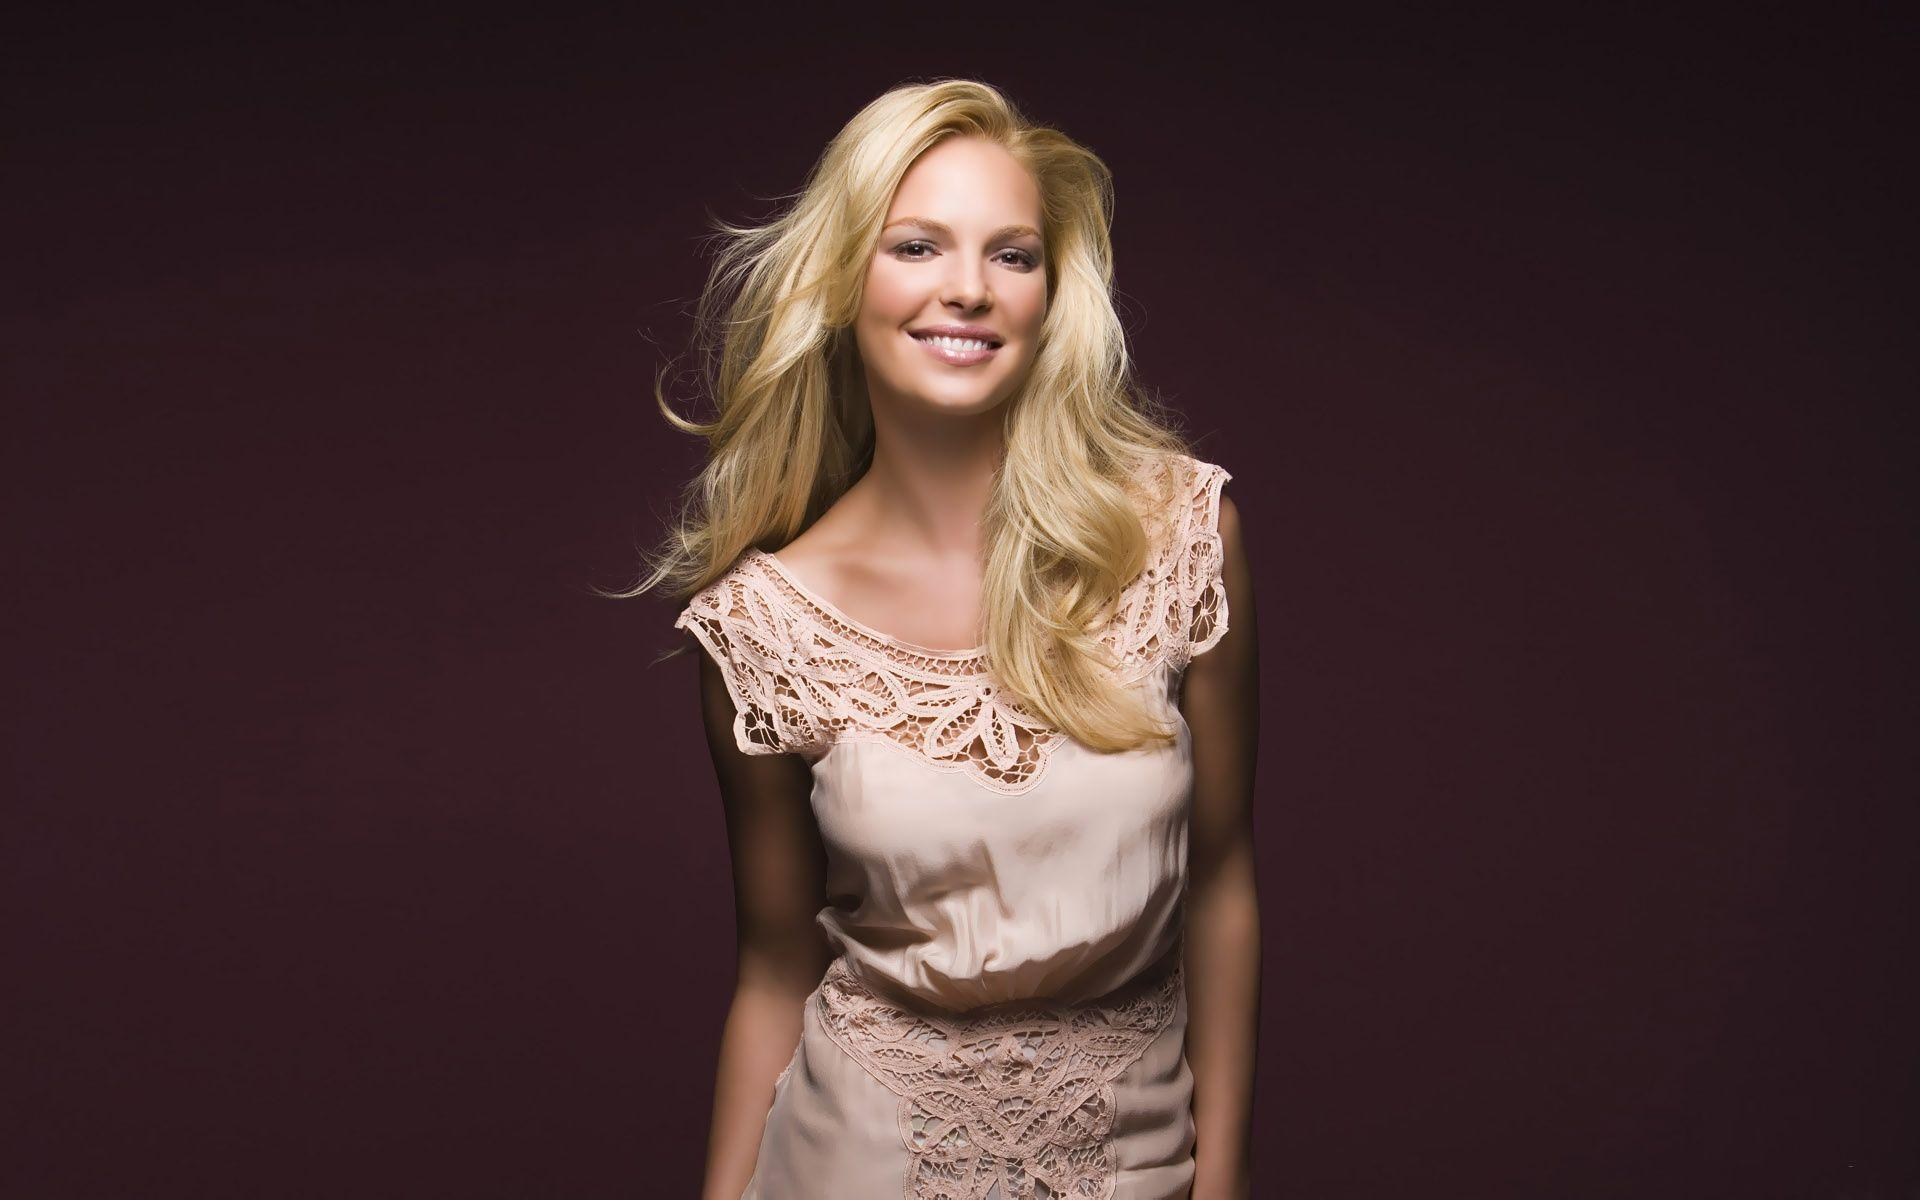 Beautiful Katherine Heigl wallpapers